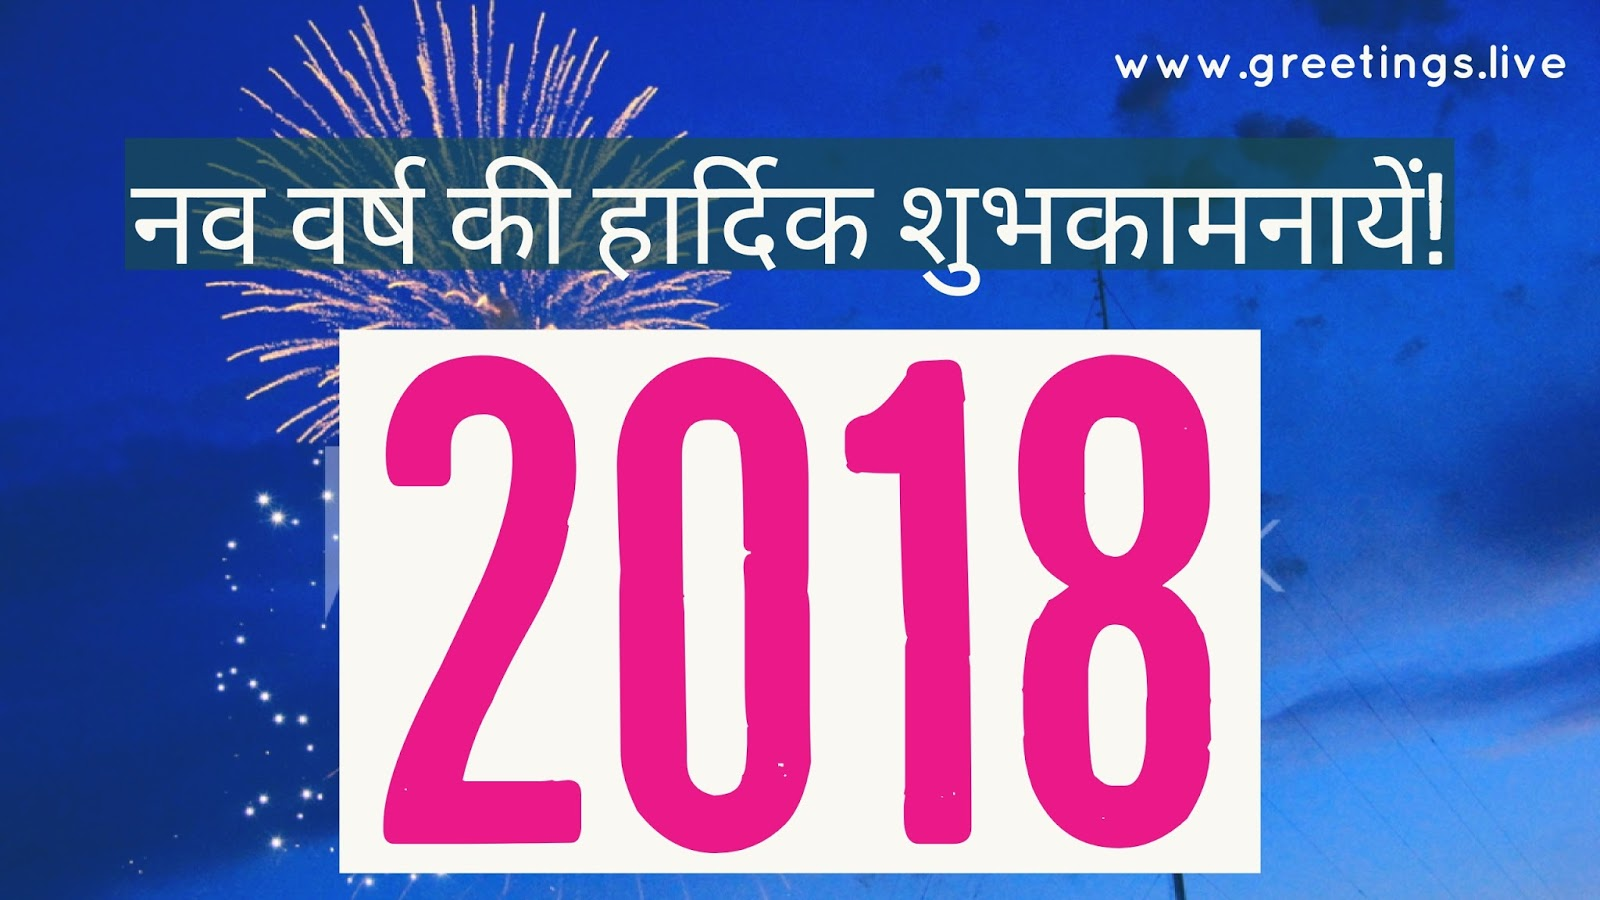 2018 New Year Wishes Greetings Greetings Live 2018 New Year In All